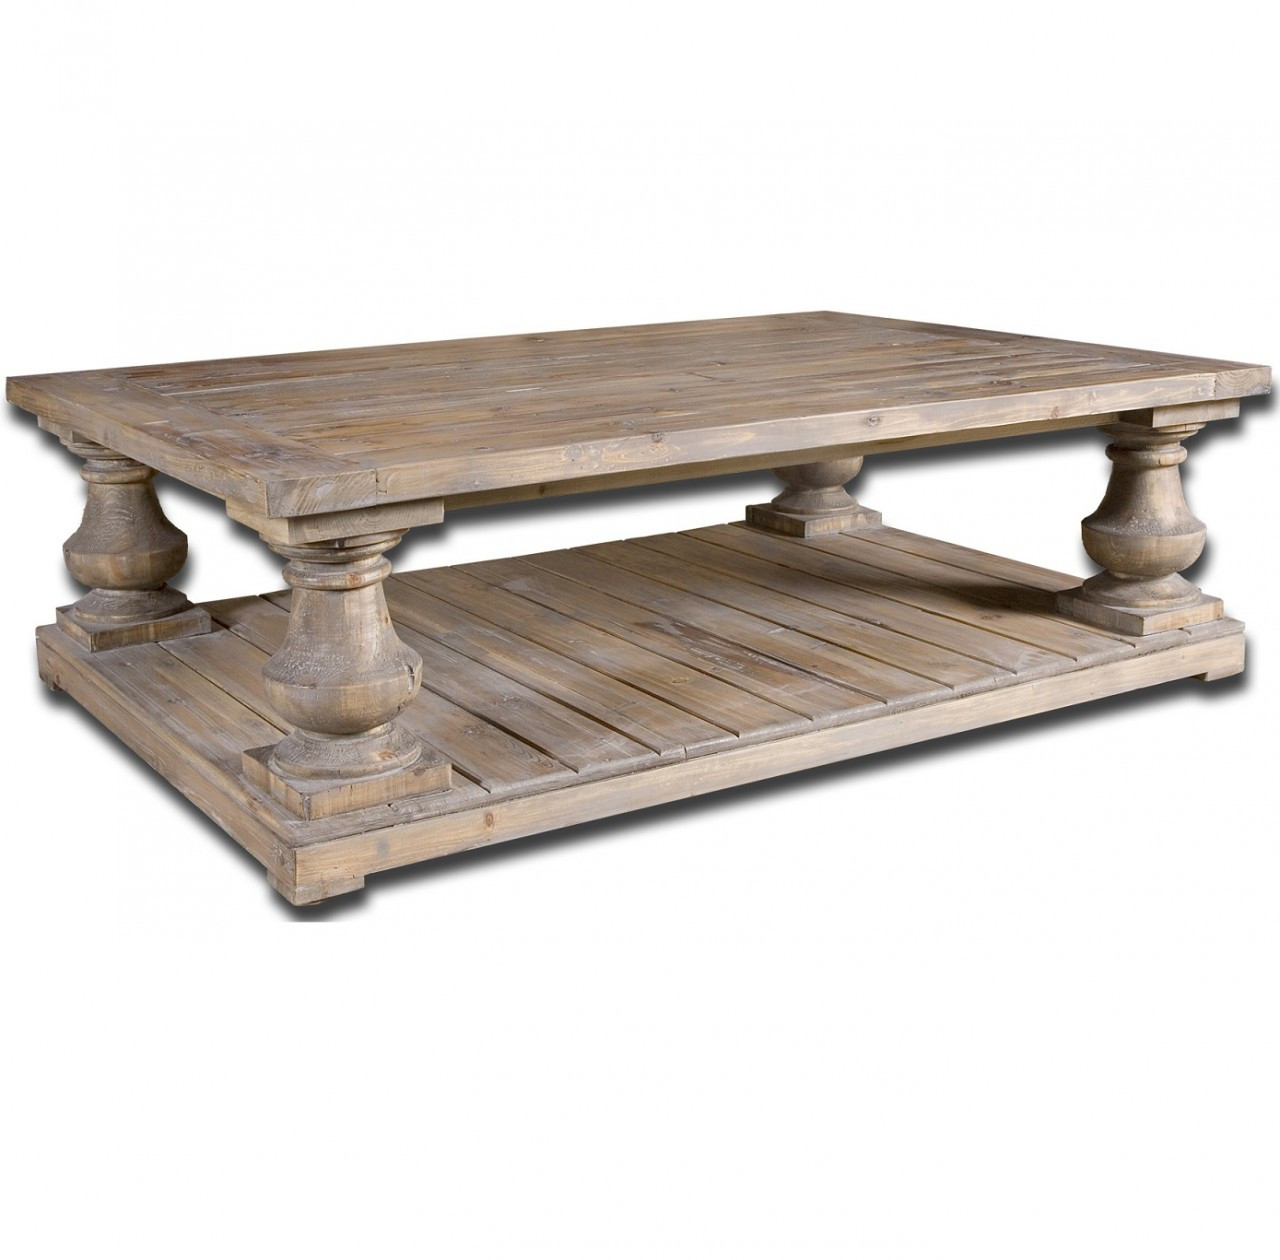 Salvaged wood rustic coffee table 60 zin home for 60s coffee table